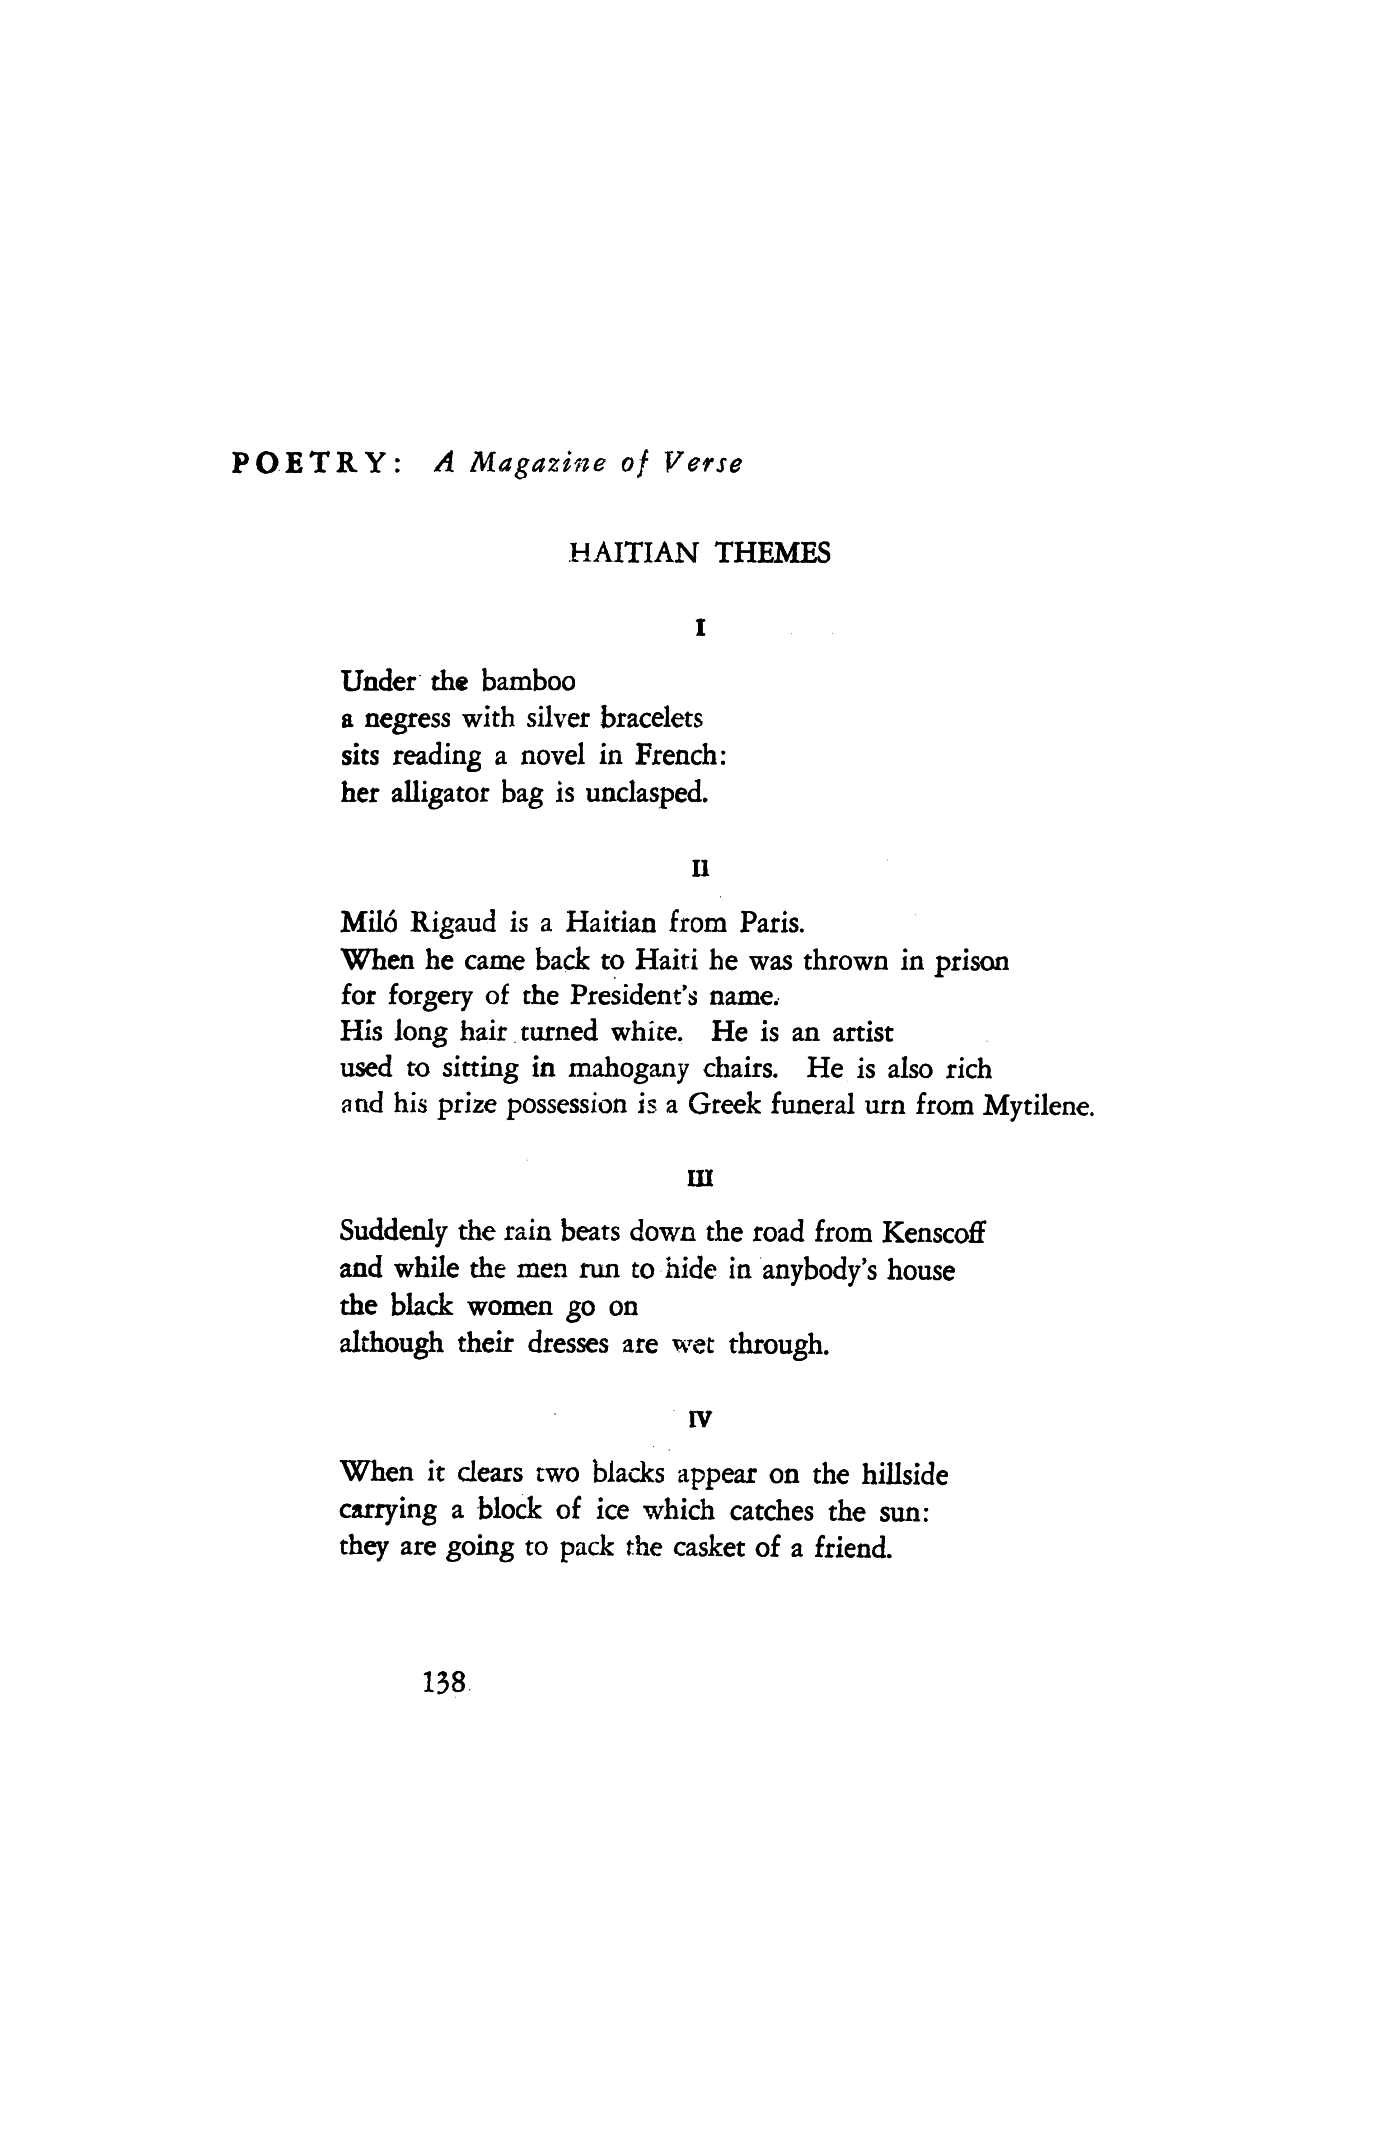 Haitian Themes By Anthony Kerrigan Poetry Magazine View a list of new poems for theme by modern poets. haitian themes by anthony kerrigan